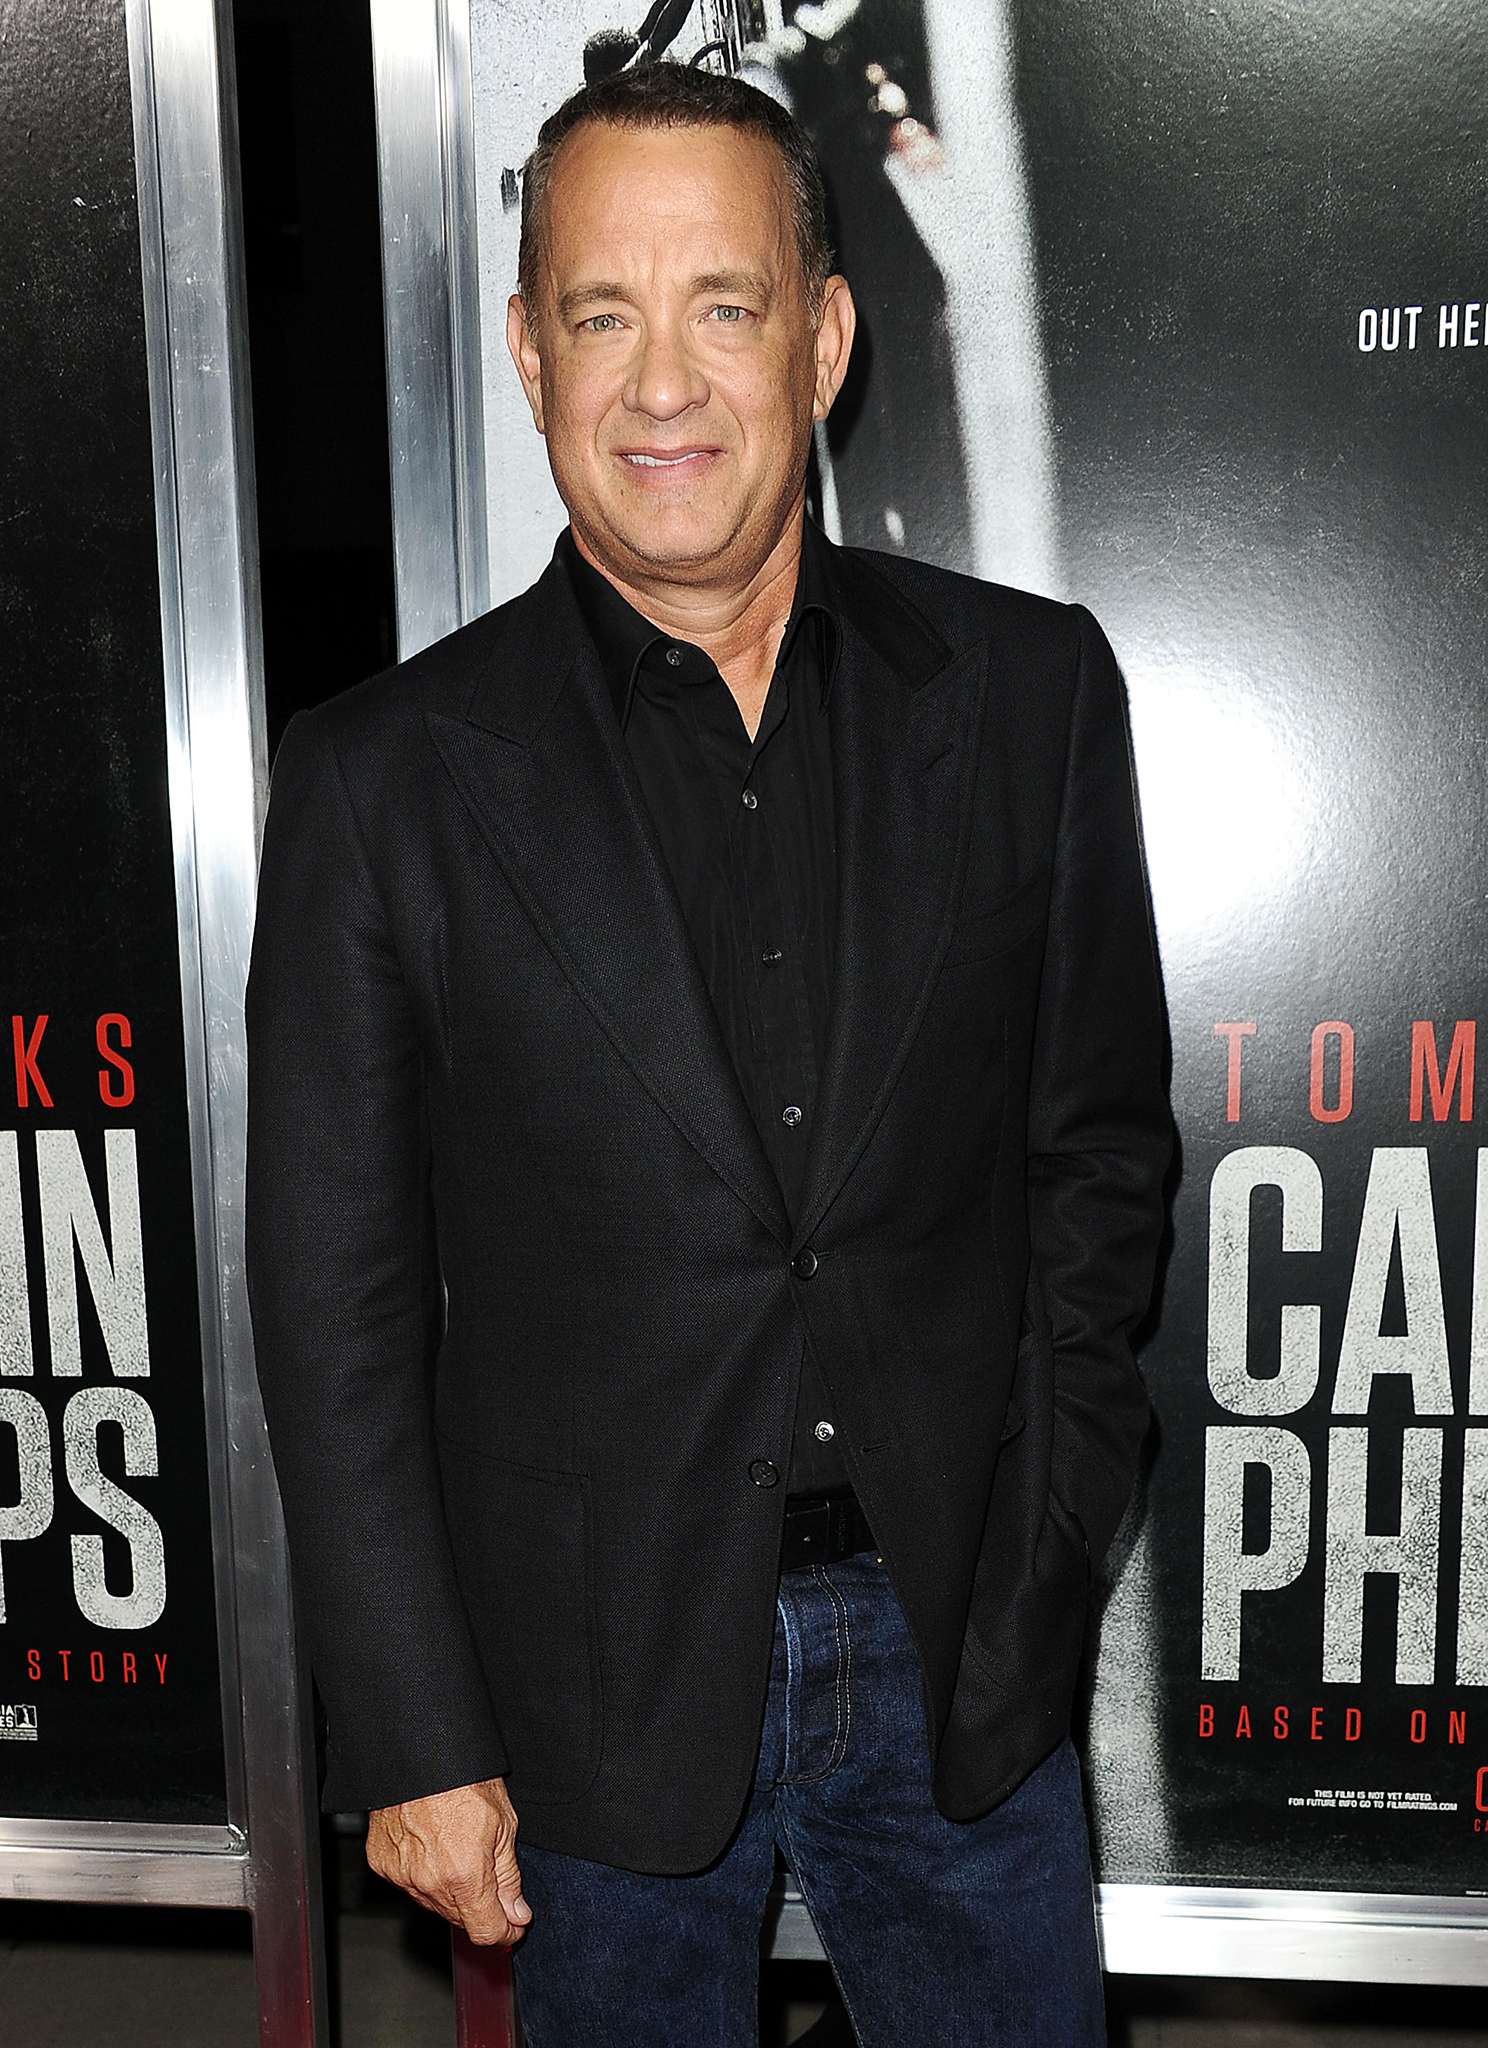 Tom Hanks (Getty Images)